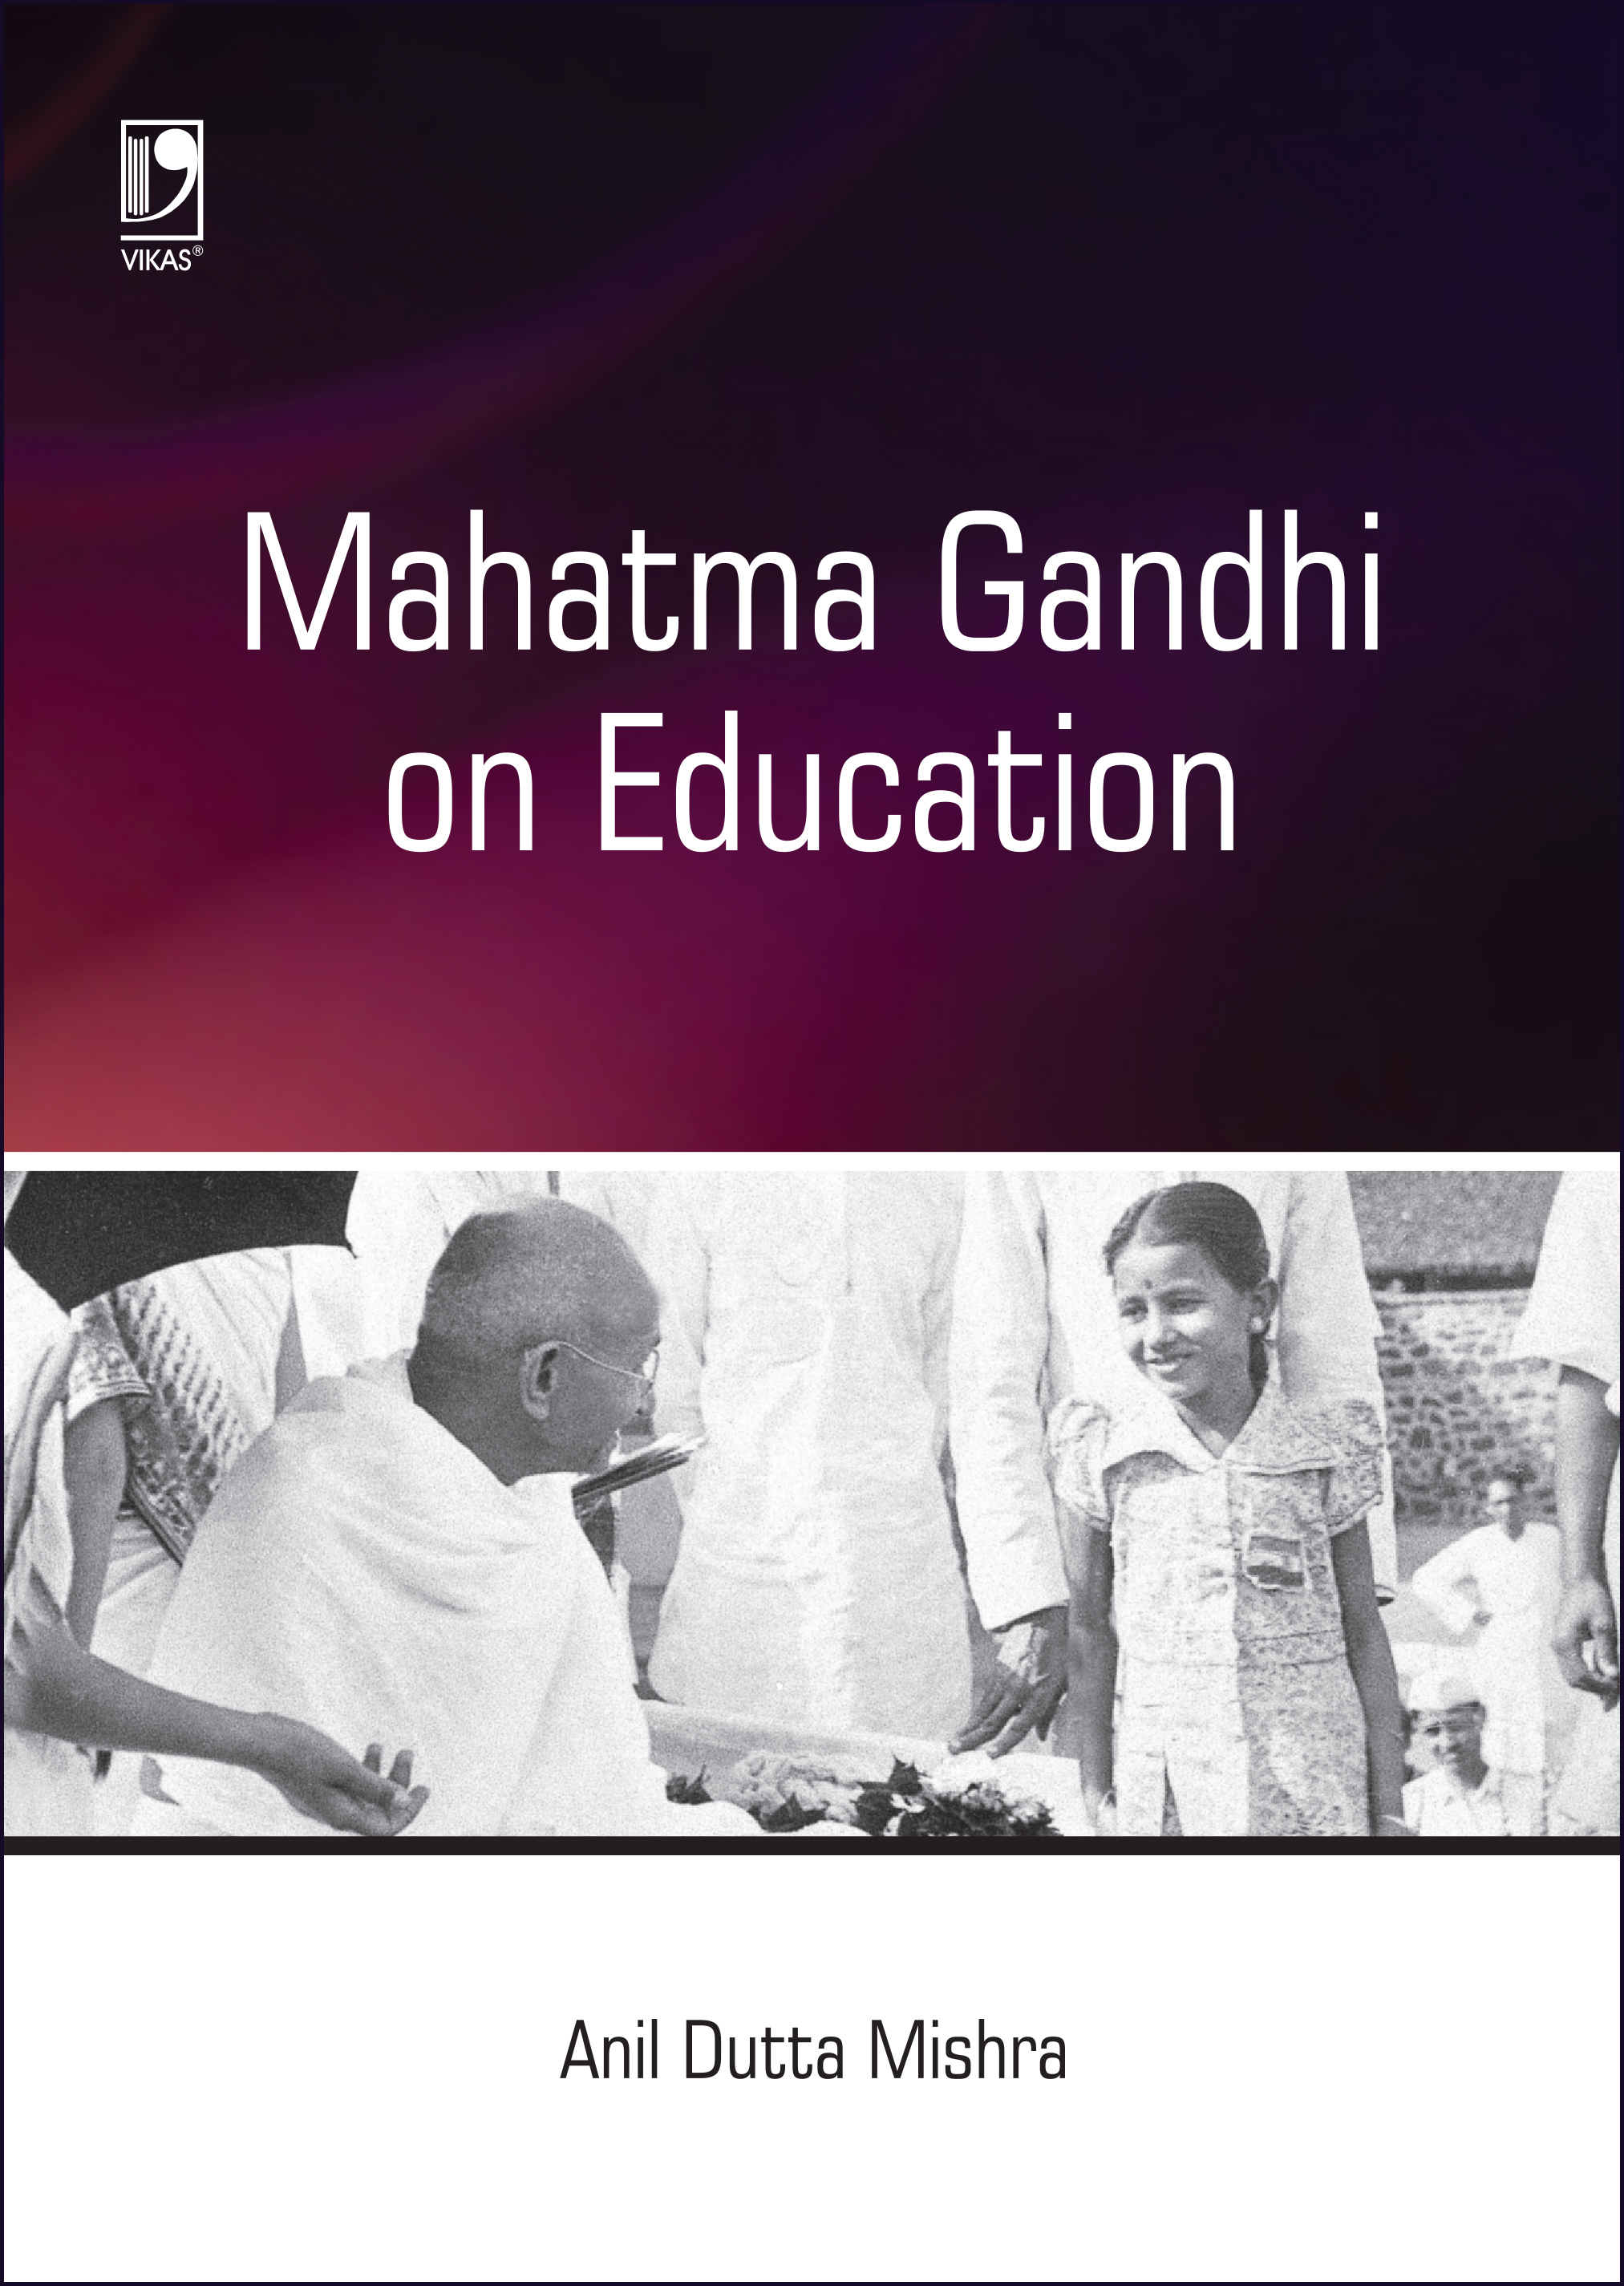 MAHATMA GANDHI ON EDUCATION by  DR. ANIL DUTTA MISHRA